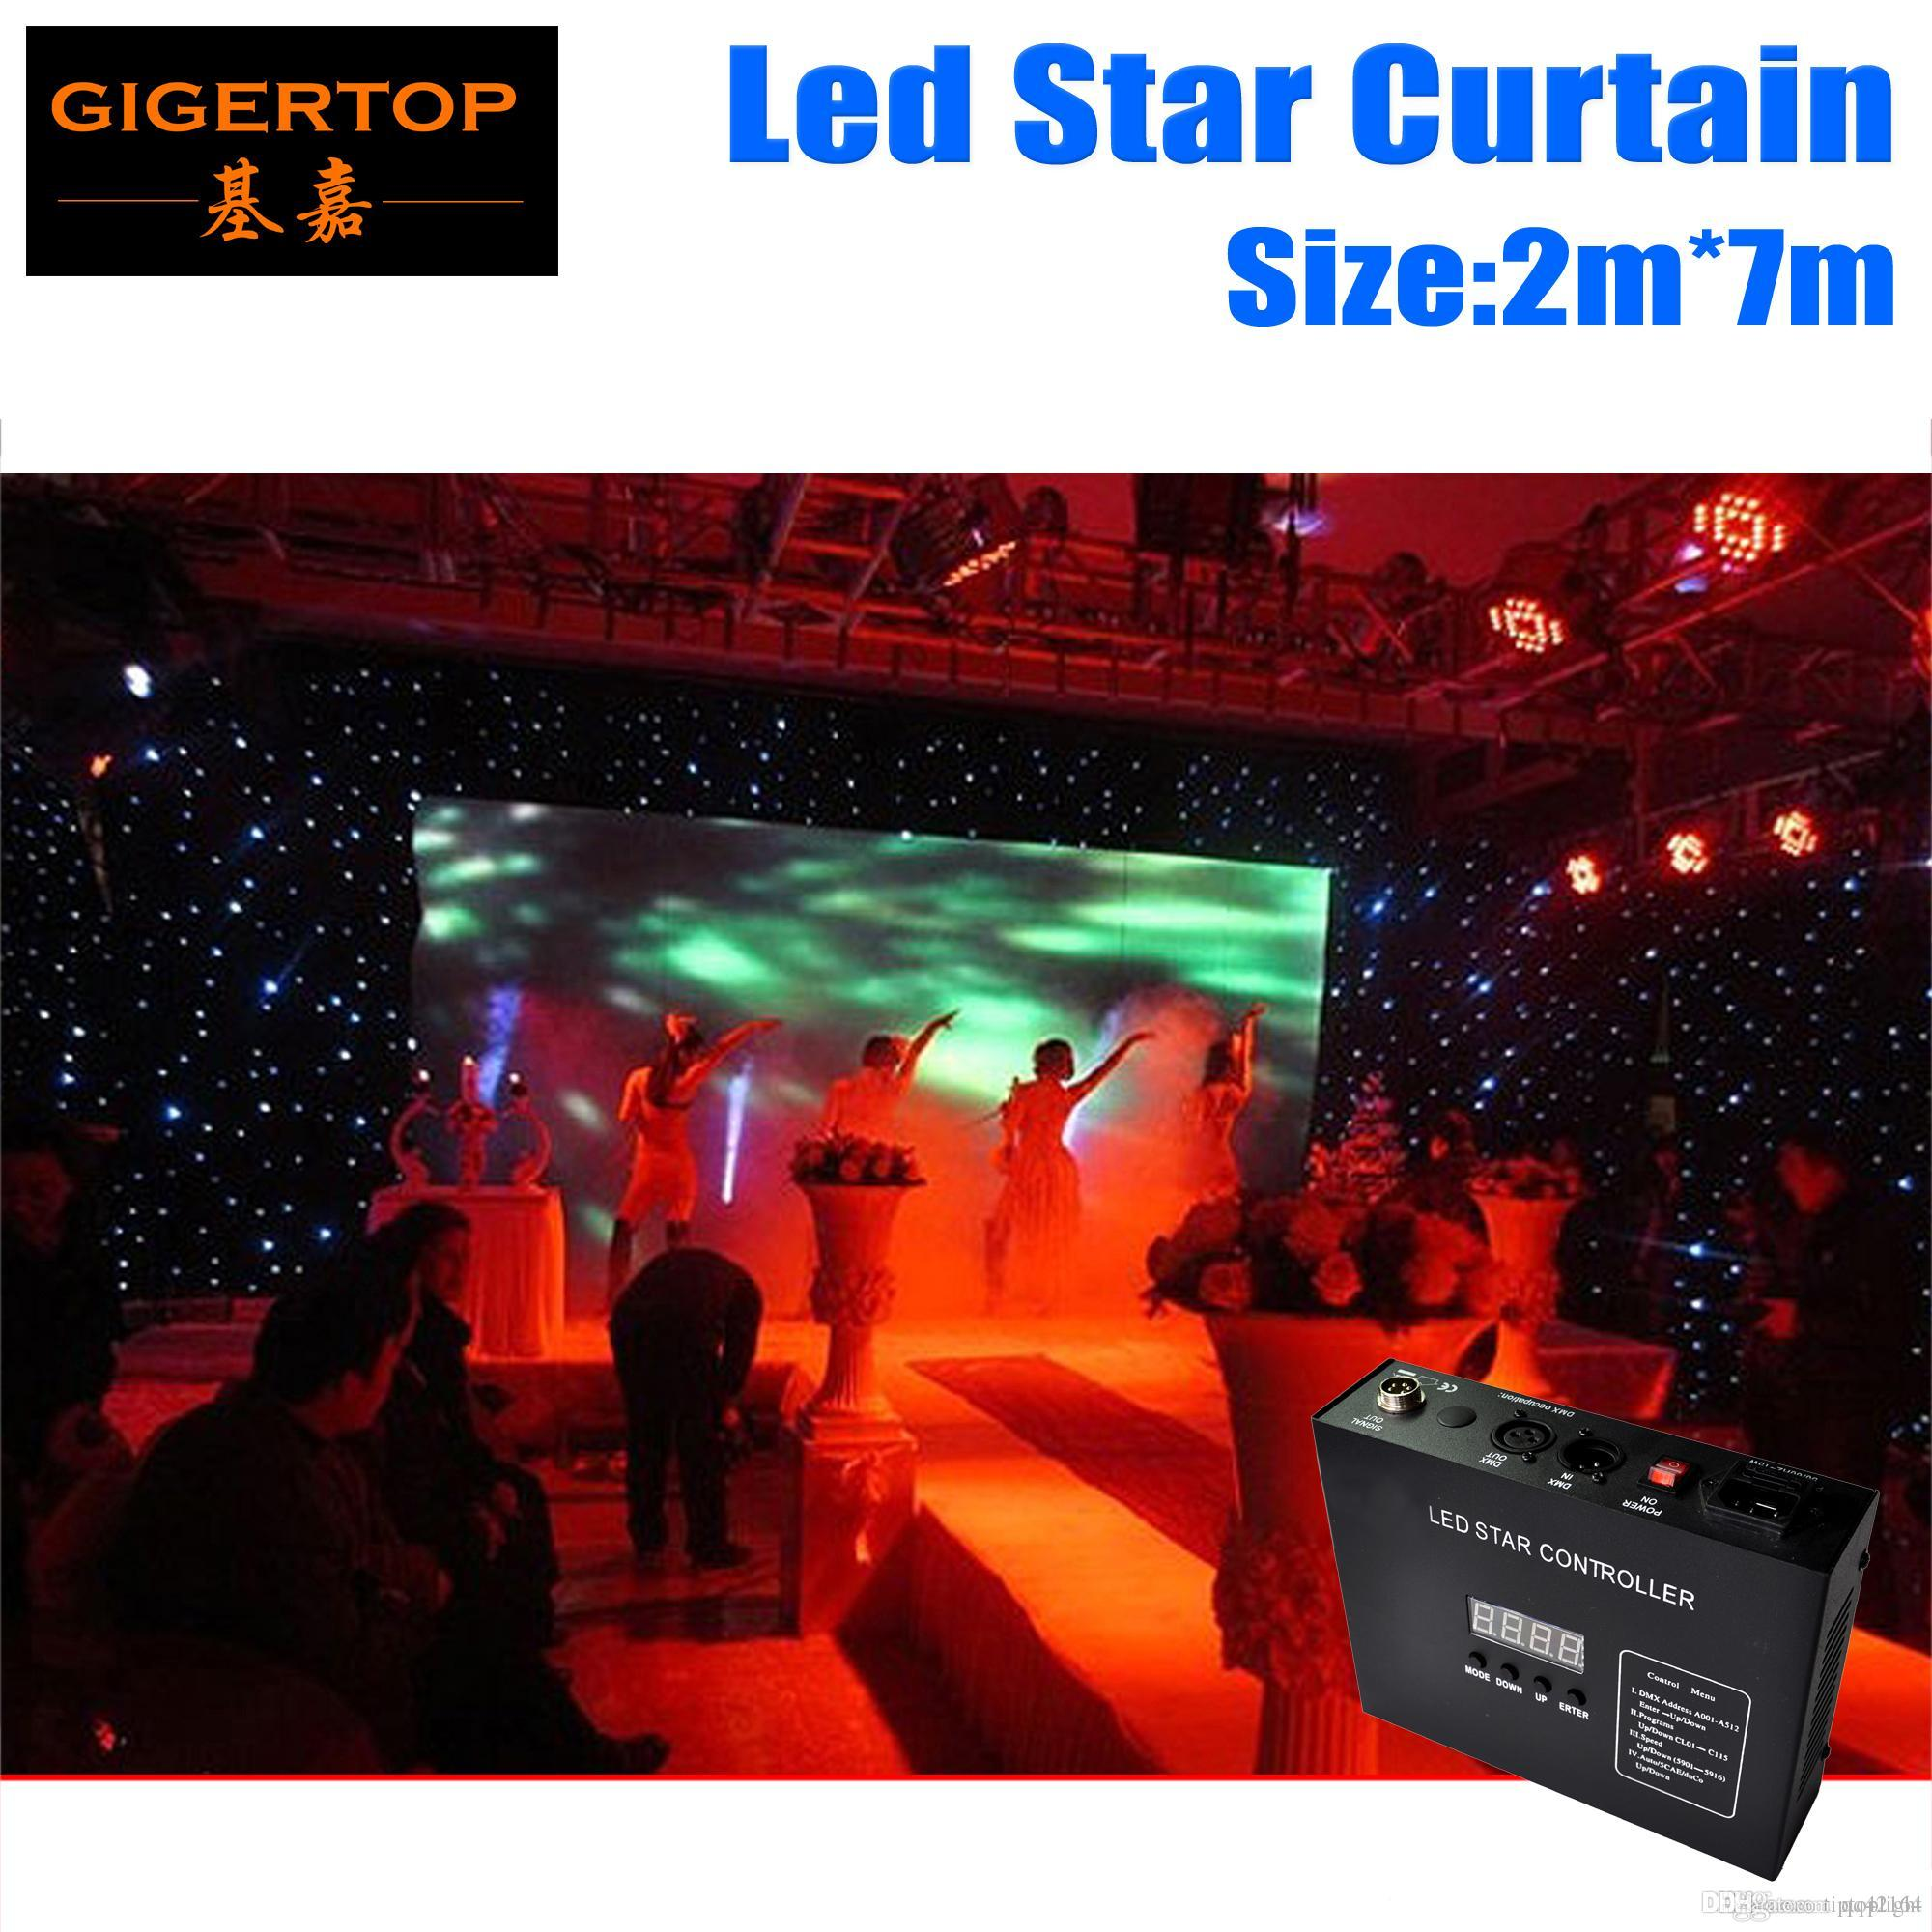 High Quality 2M*7M&7M*2M LED Star Curtain,White blue/ RGBW/RGB Colored LED Stage Backdrop,LED Star Cloth for Wedding Decoration 90V-240V